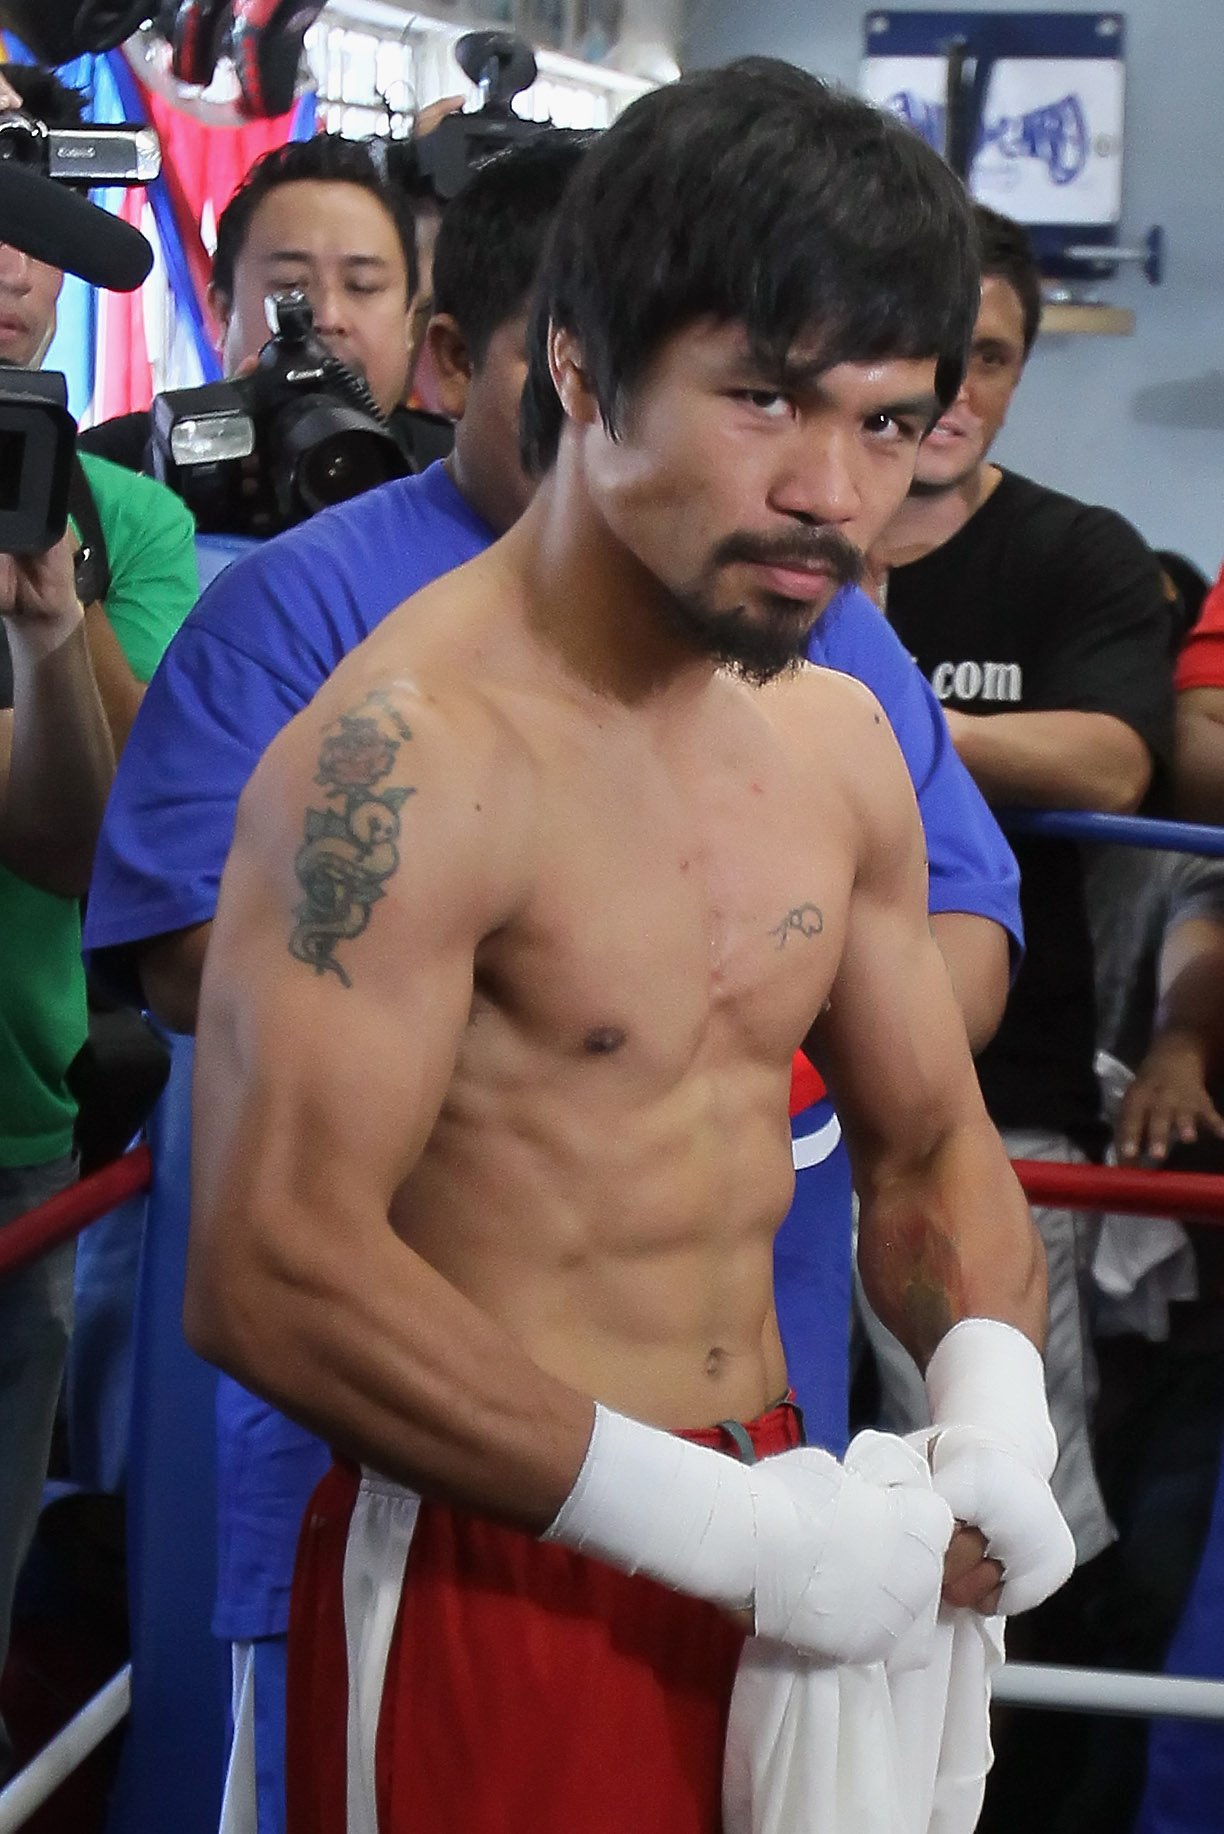 HOLLYWOOD, CA - APRIL 20:  Manny Pacquiao of the Philippines poses during a media workout at the Wild Card Boxing Club on April 20, 2011 in Hollywood, California.  (Photo by Jeff Gross/Getty Images)